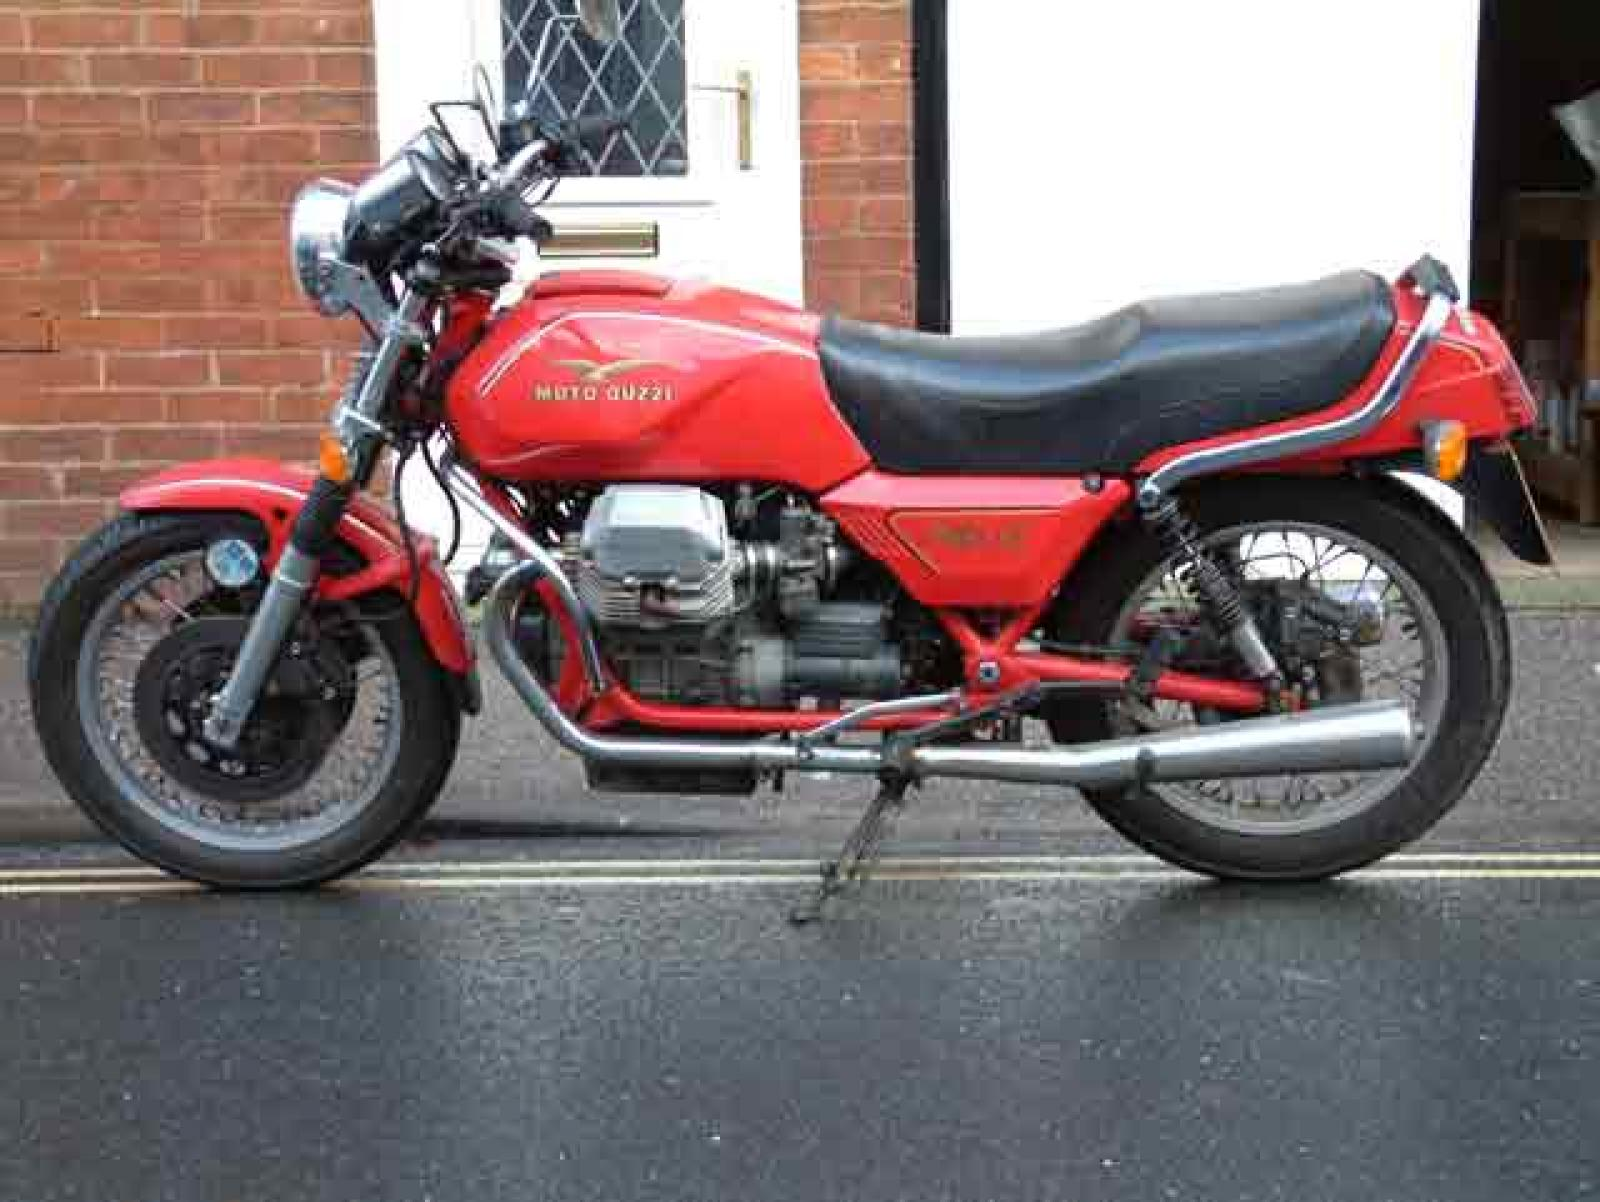 1987 Moto Guzzi Mille GT (reduced effect) #4